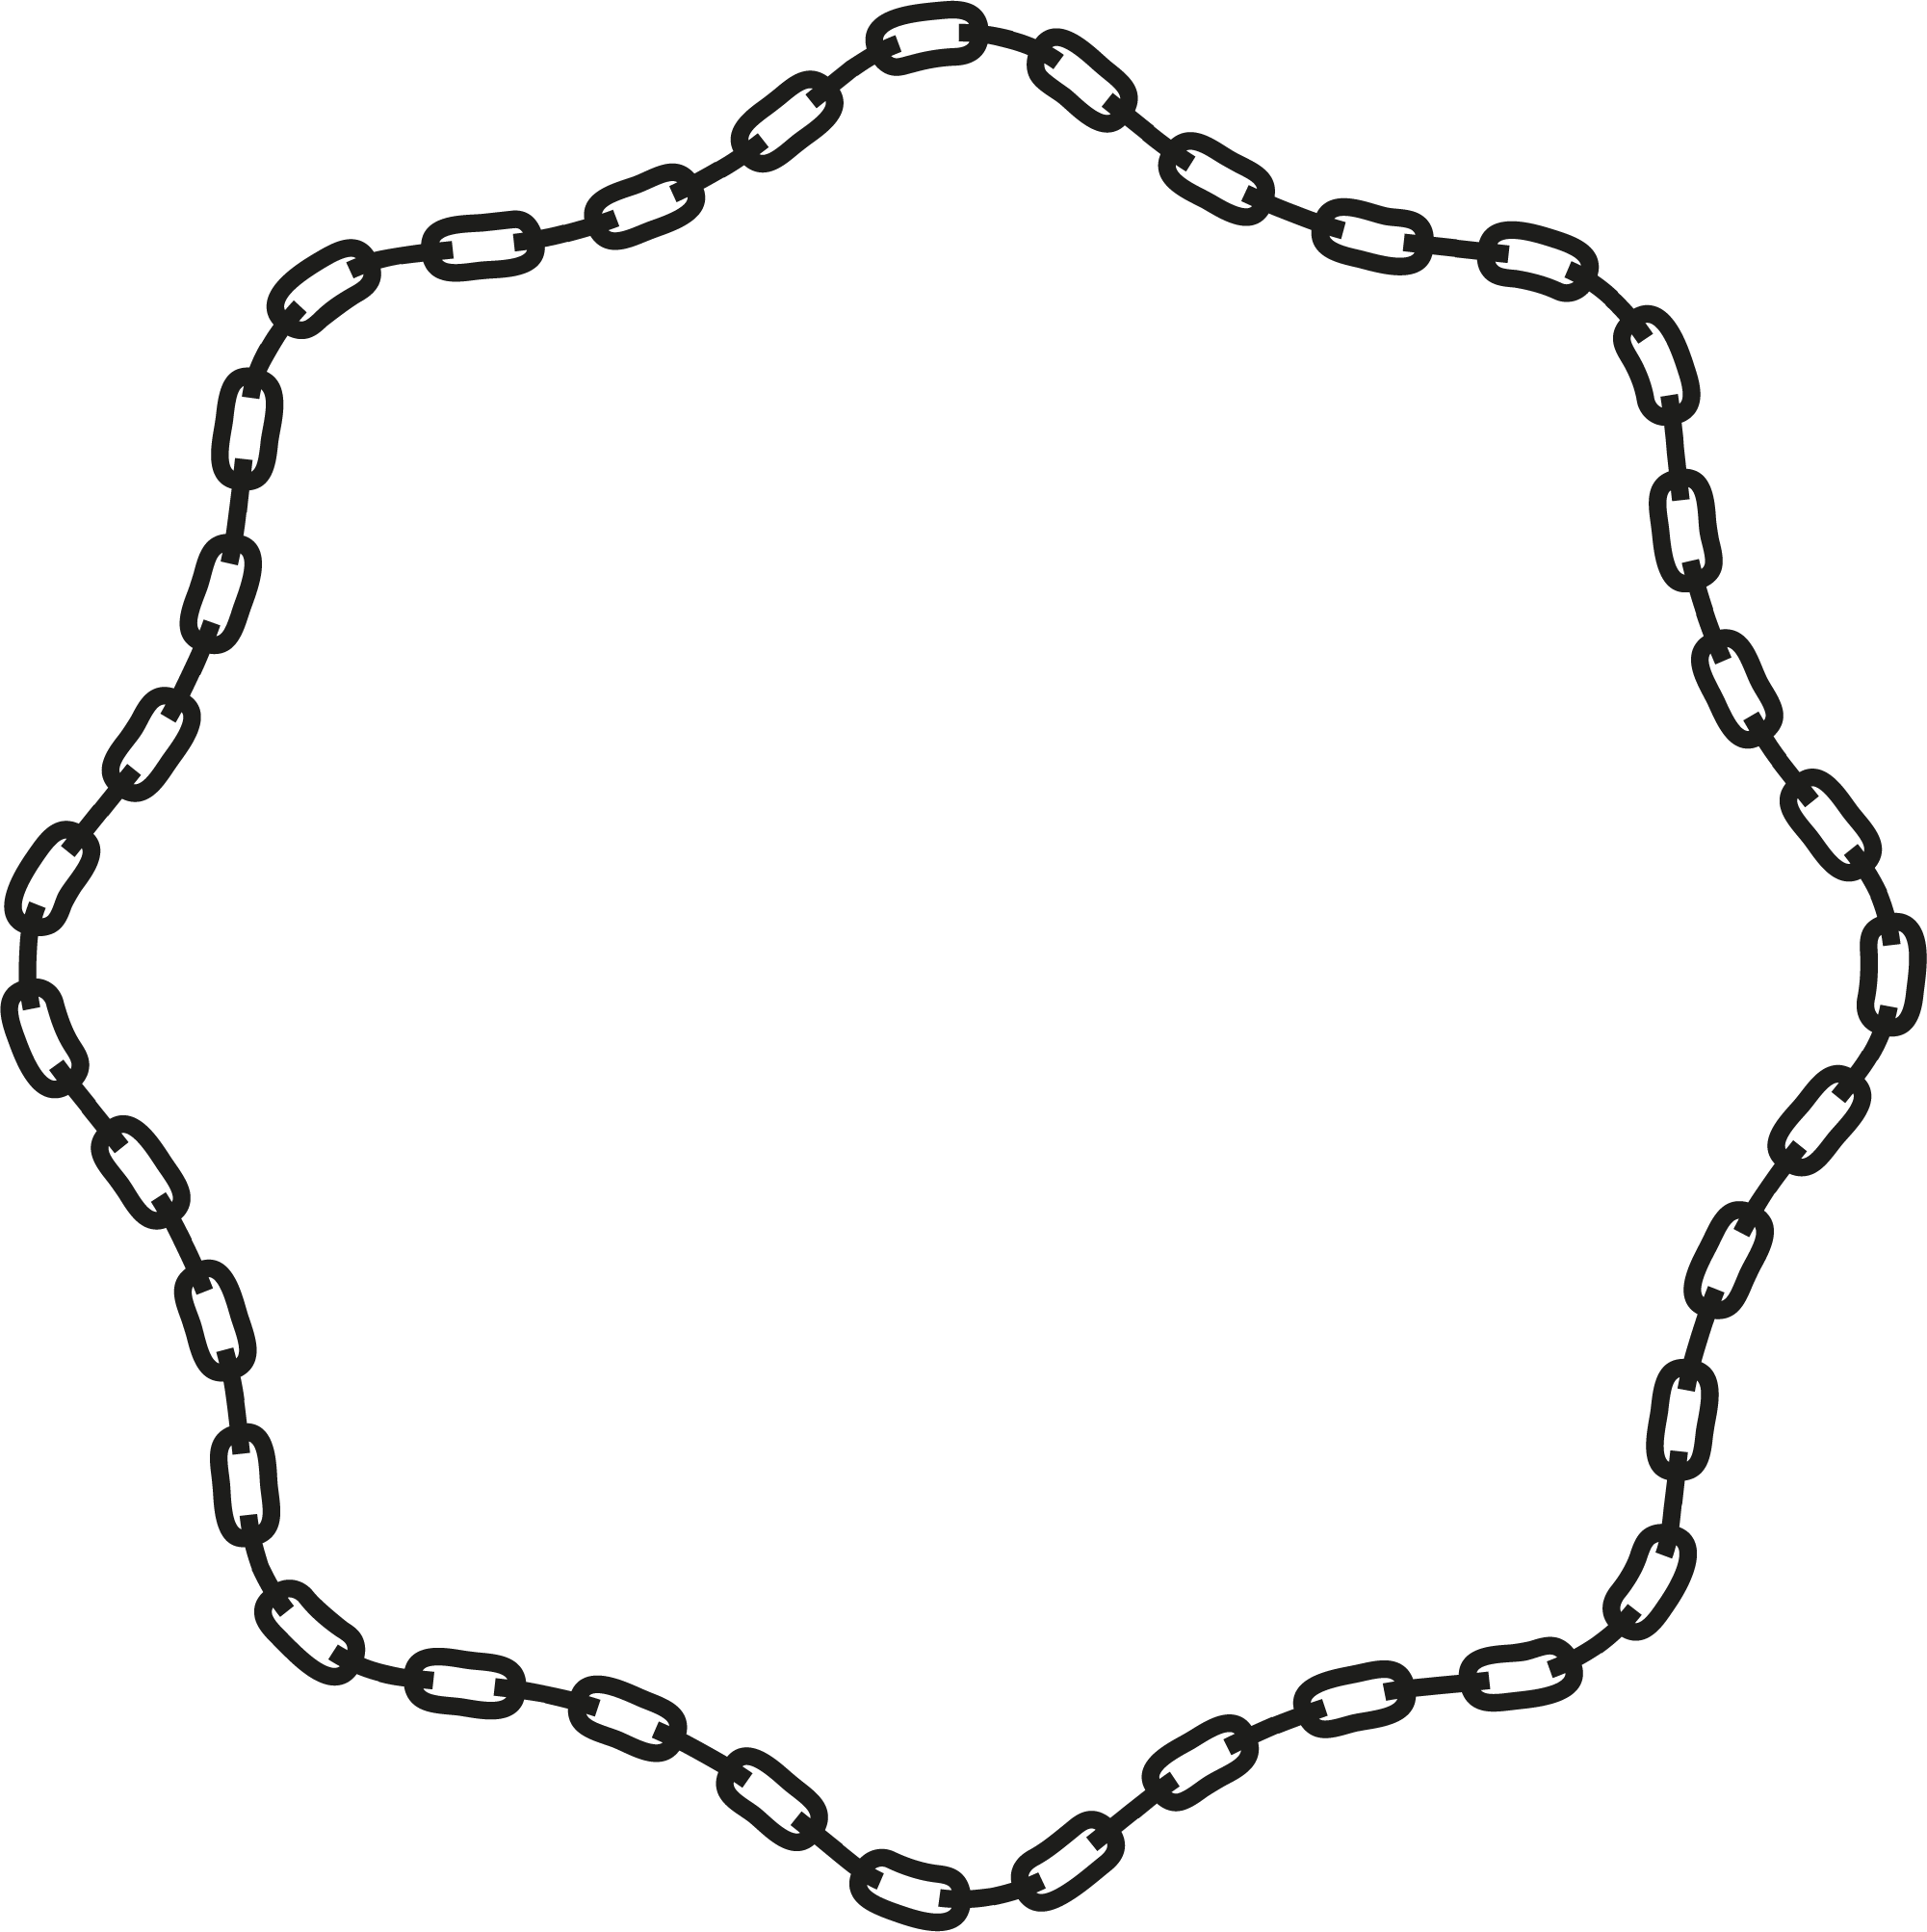 clipart black and white library Royalty free clip art. Drawing rope chain